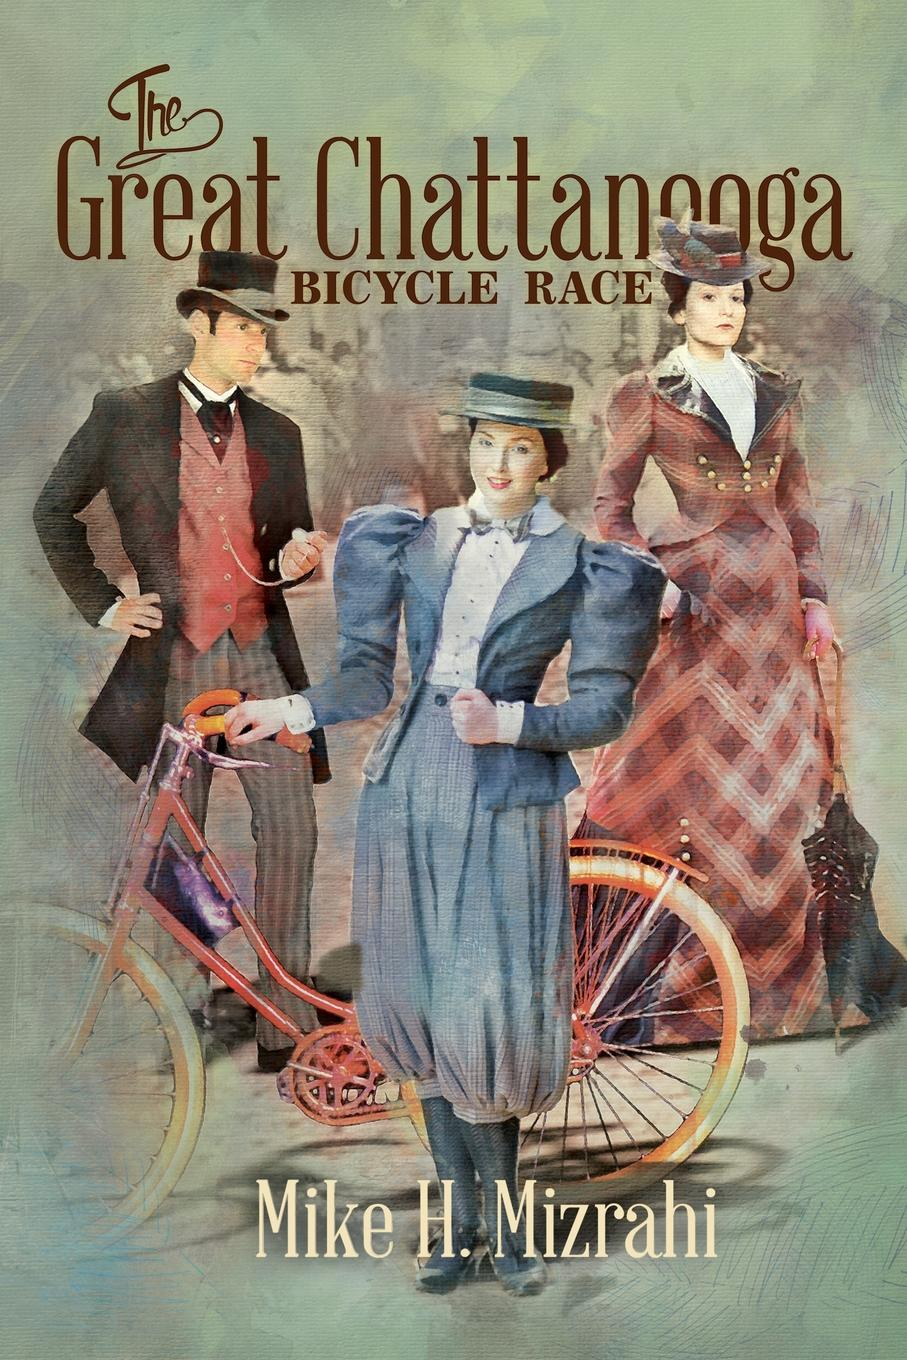 Mike H Mizrahi The Great Chattanooga Bicycle Race